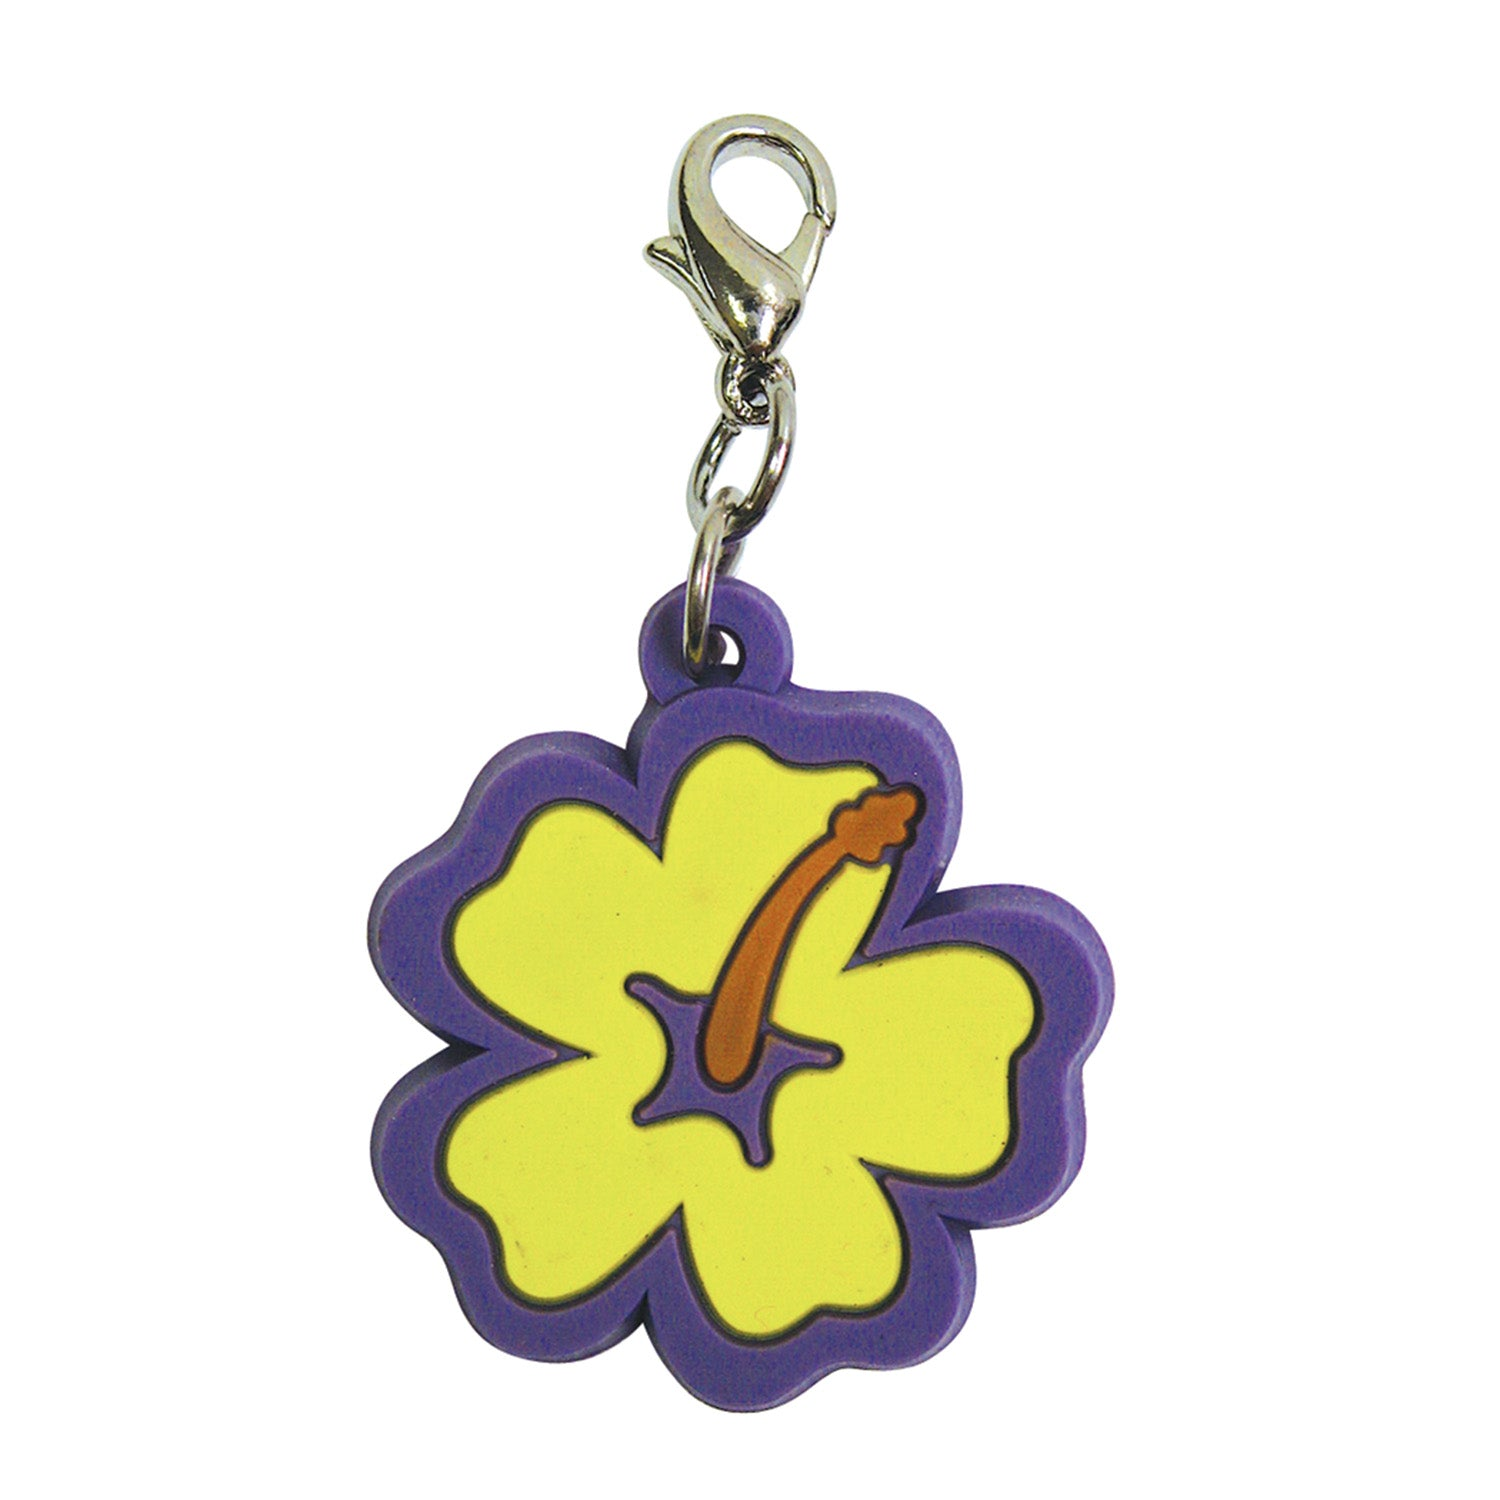 Soft PVC Rubber Hibiscus Charms - Yellow w/Purple Trim